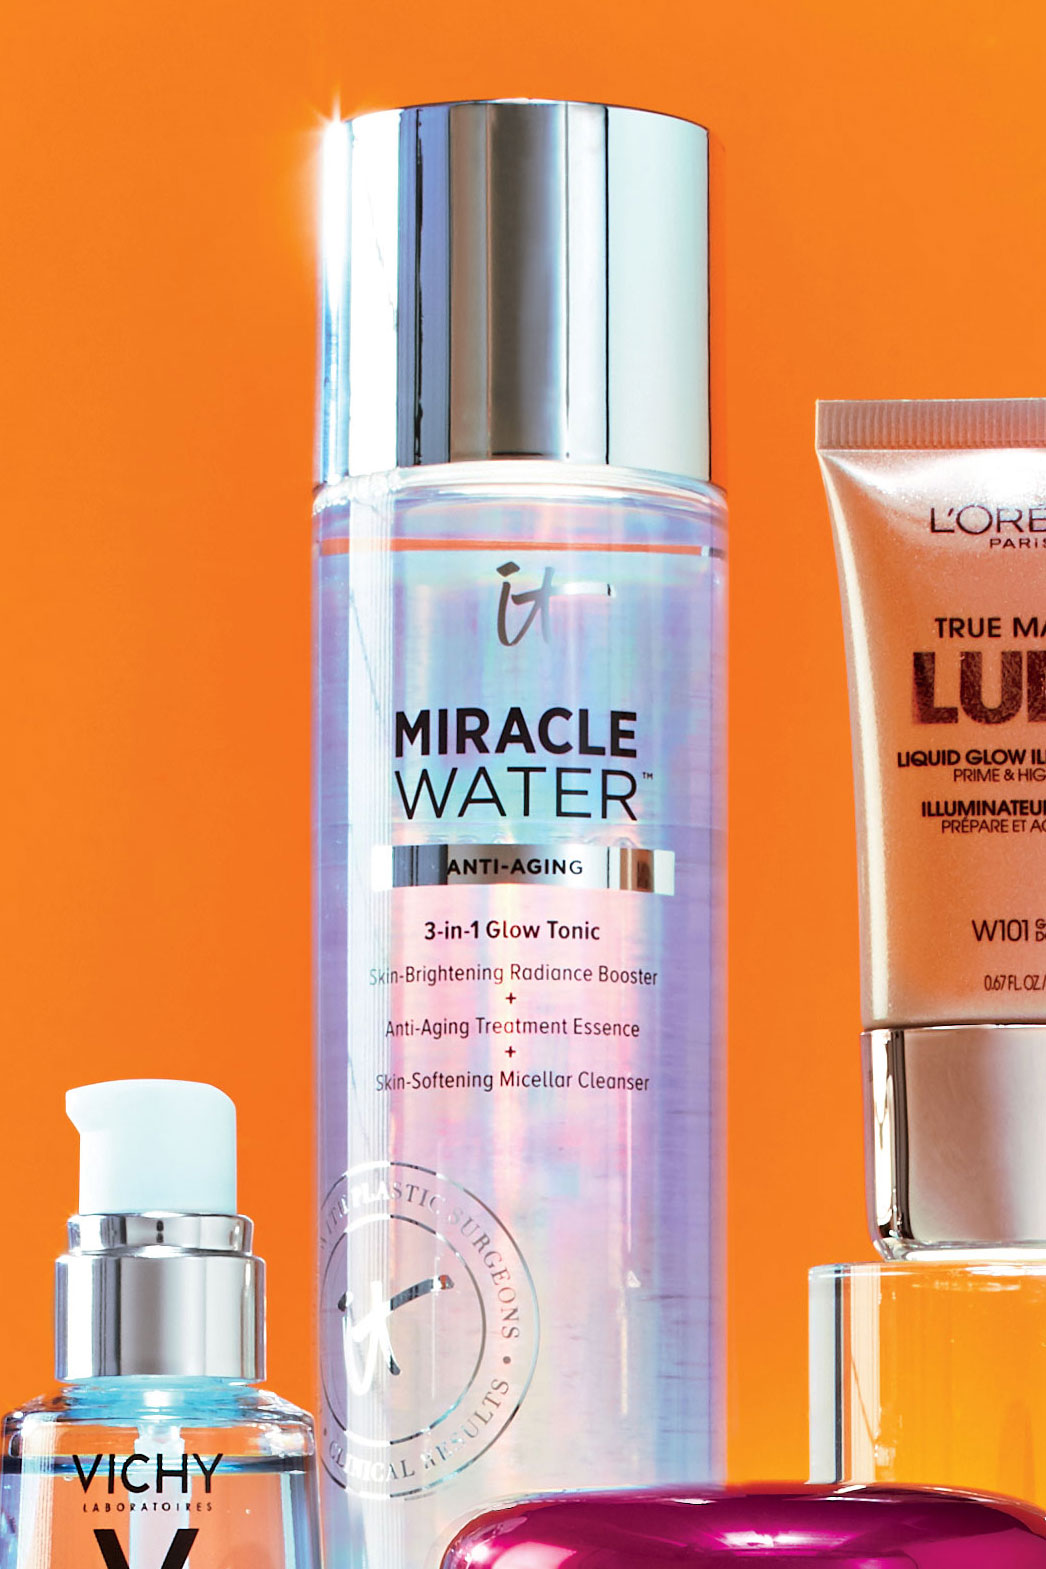 IT Cosmetics Miracle Water 3-in-1 Glow Tonic